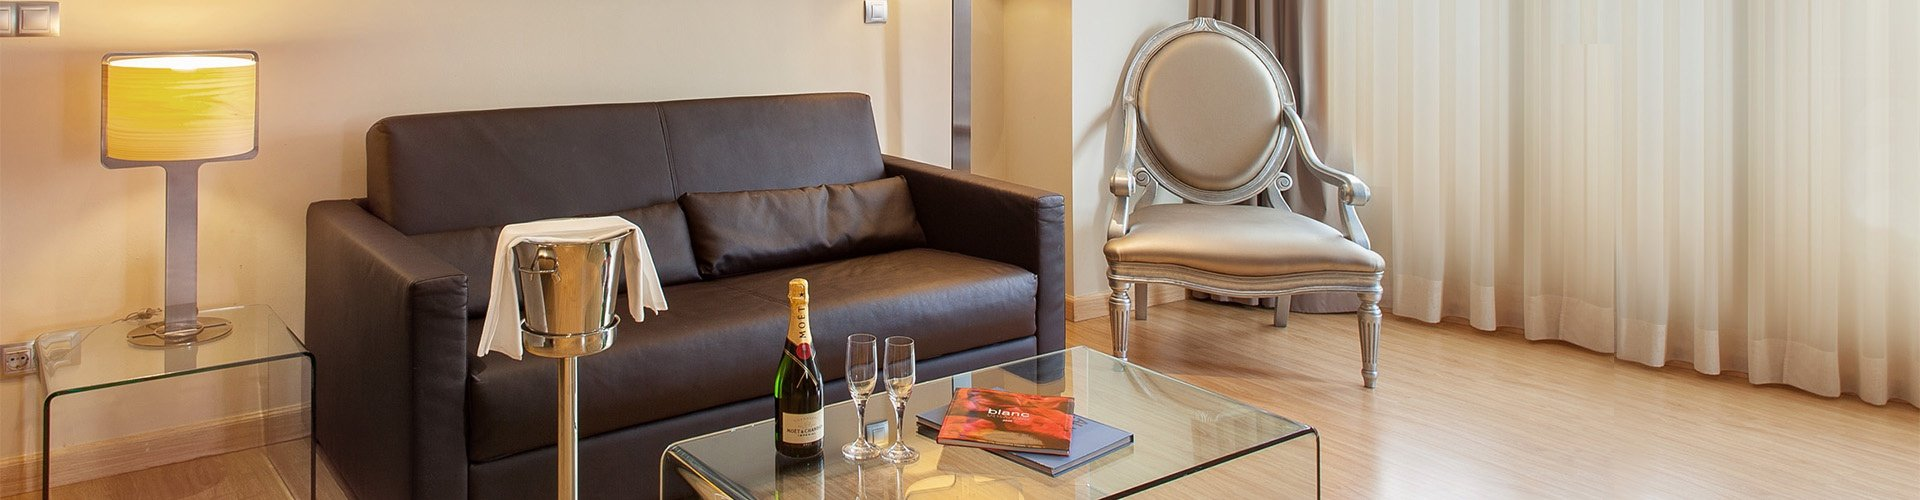 Villa Venecia Boutique - Benidorm - Rooms